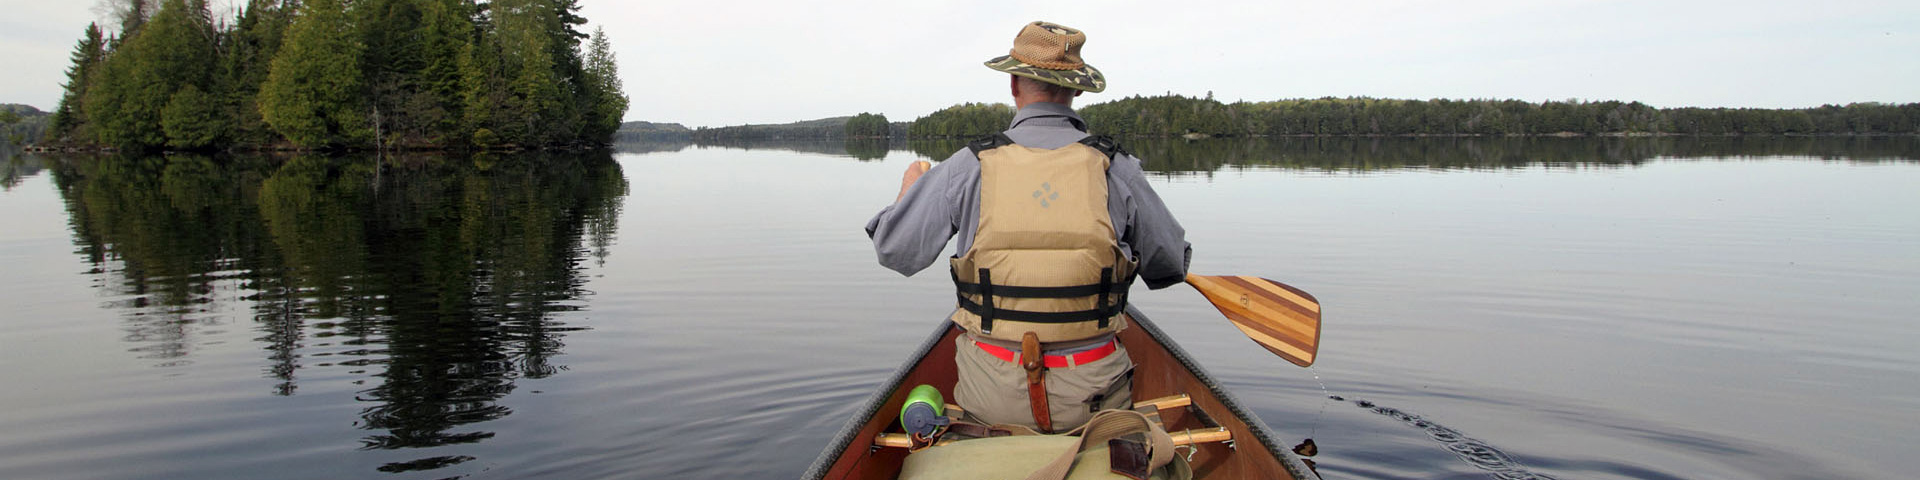 Deluxe Canoe Trip Package by Algonquin Outfitters - Image 11